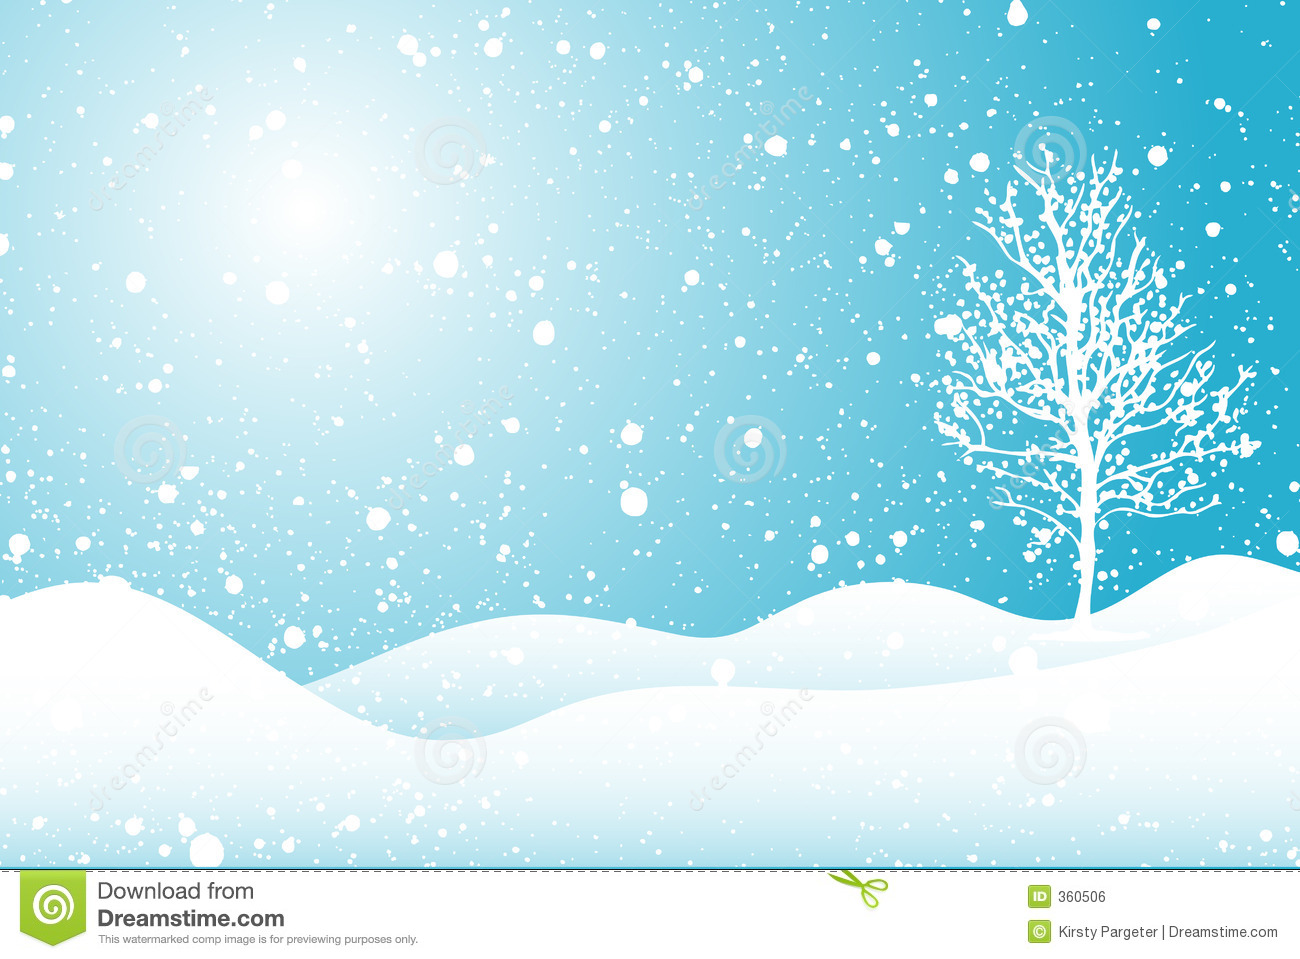 Winter Scene Clipart - Clipart Kid